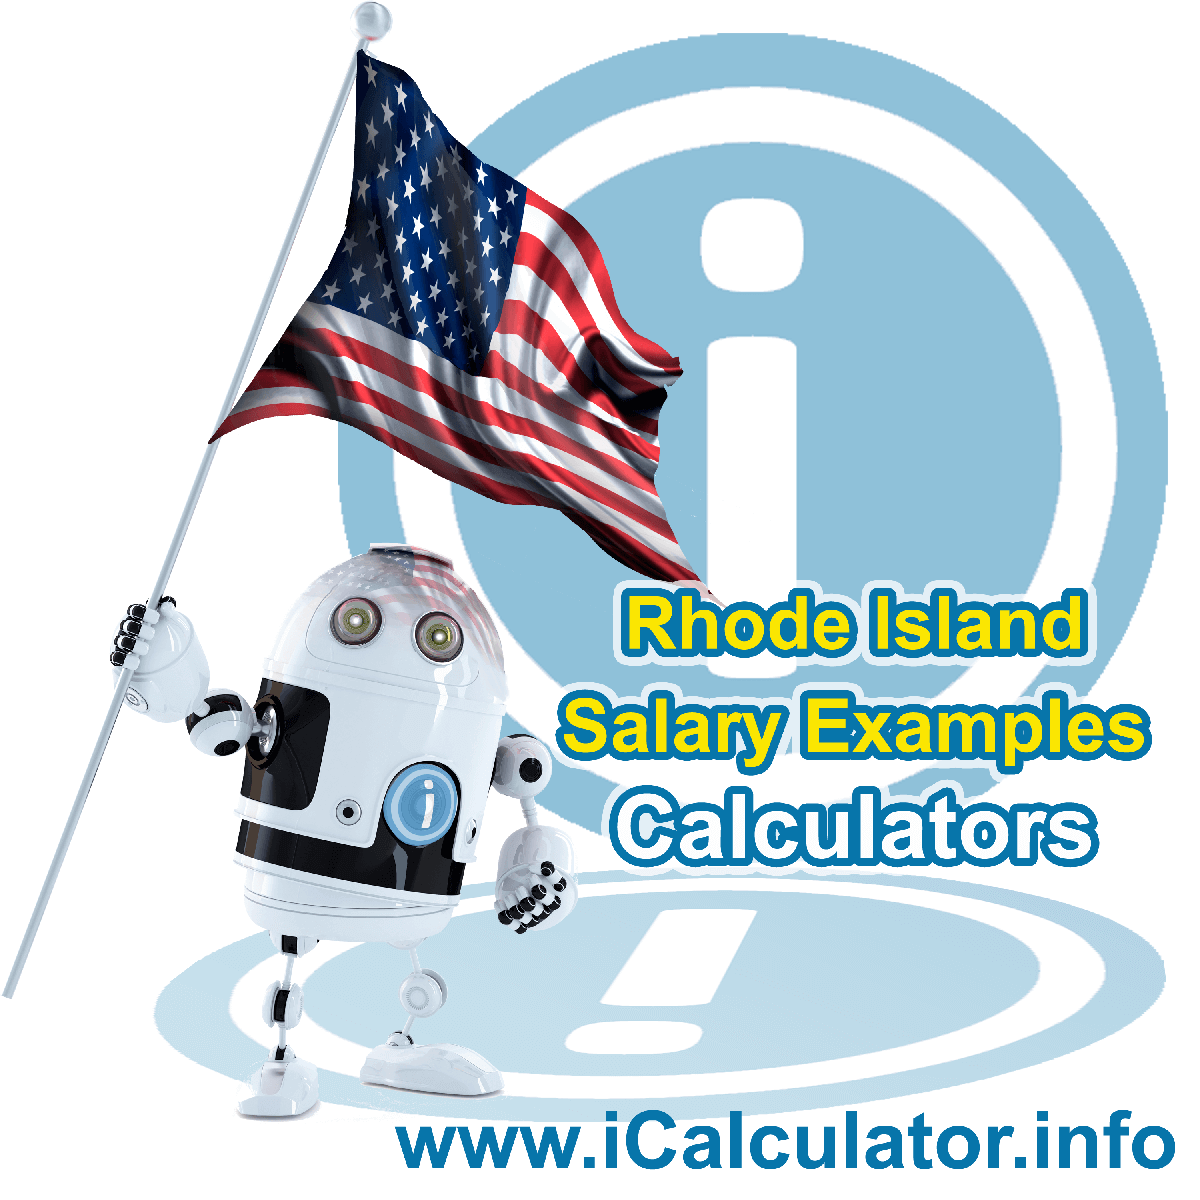 Rhode Island Salary Example for $80.00 in 2020 | iCalculator | $80.00 salary example for employee and employer paying Rhode Island State tincome taxes. Detailed salary after tax calculation including Rhode Island State Tax, Federal State Tax, Medicare Deductions, Social Security, Capital Gains and other income tax and salary deductions complete with supporting Rhode Island state tax tables